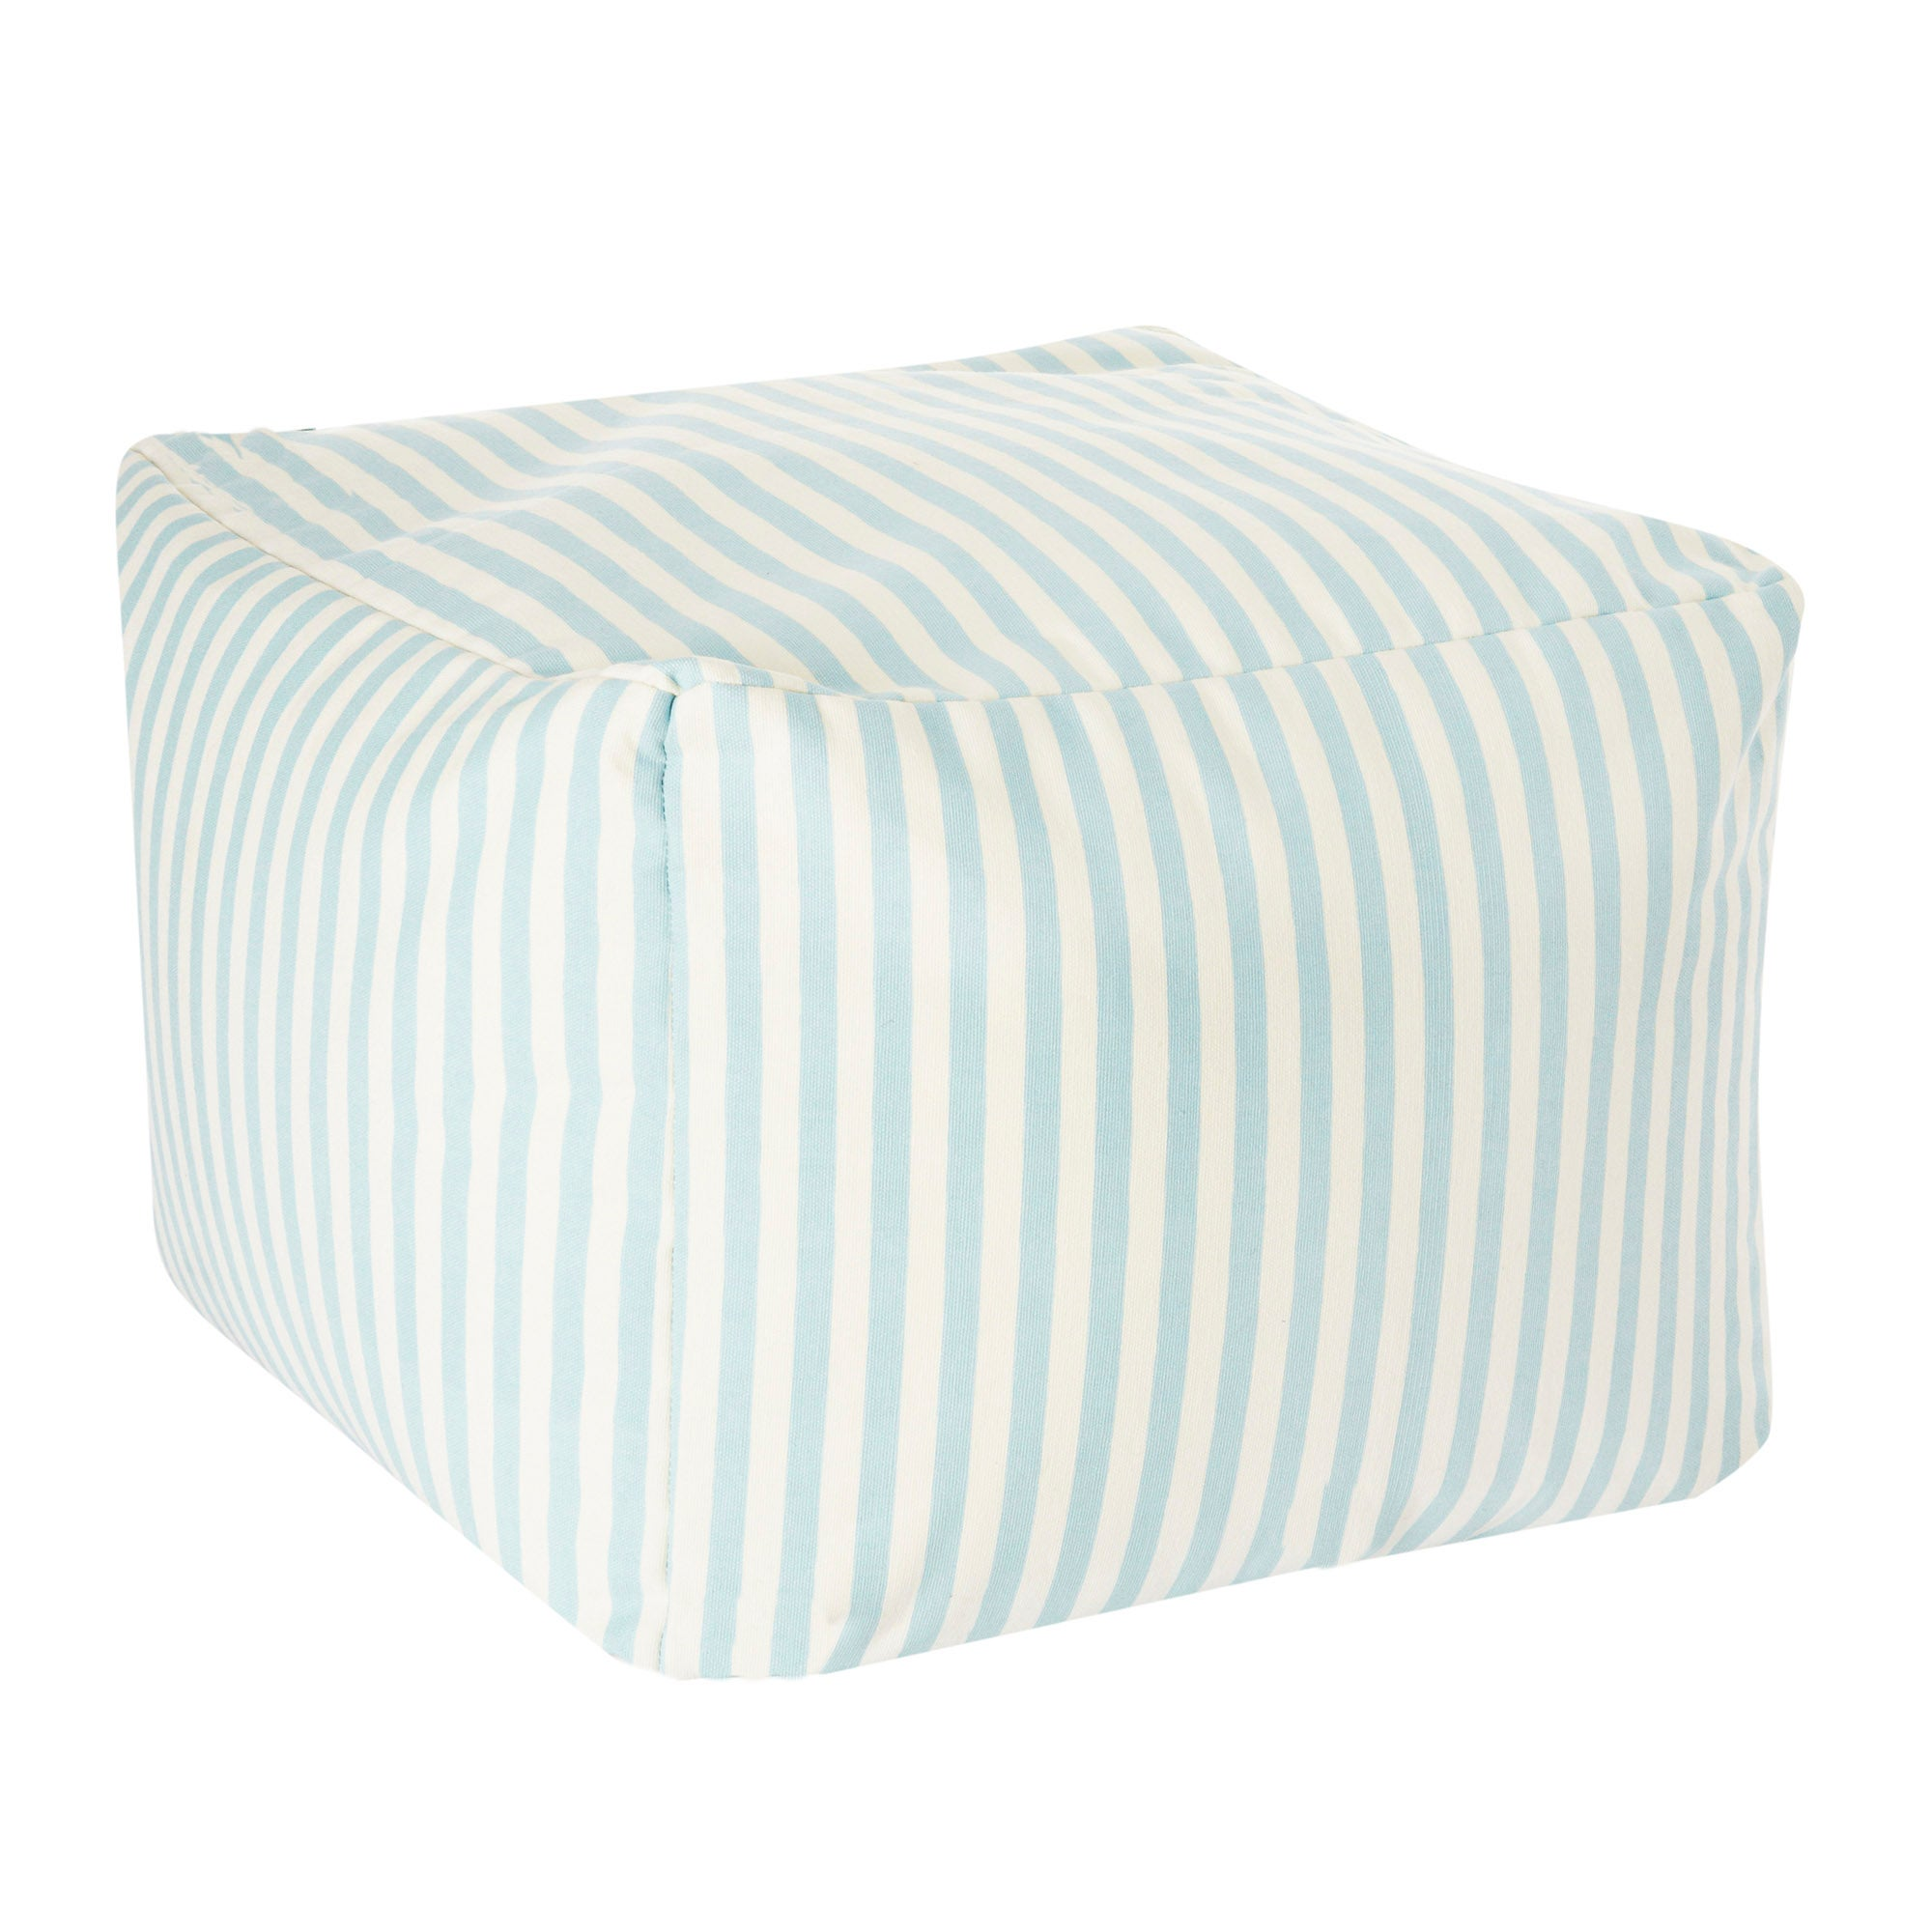 Retro Collection Striped Bean Cube